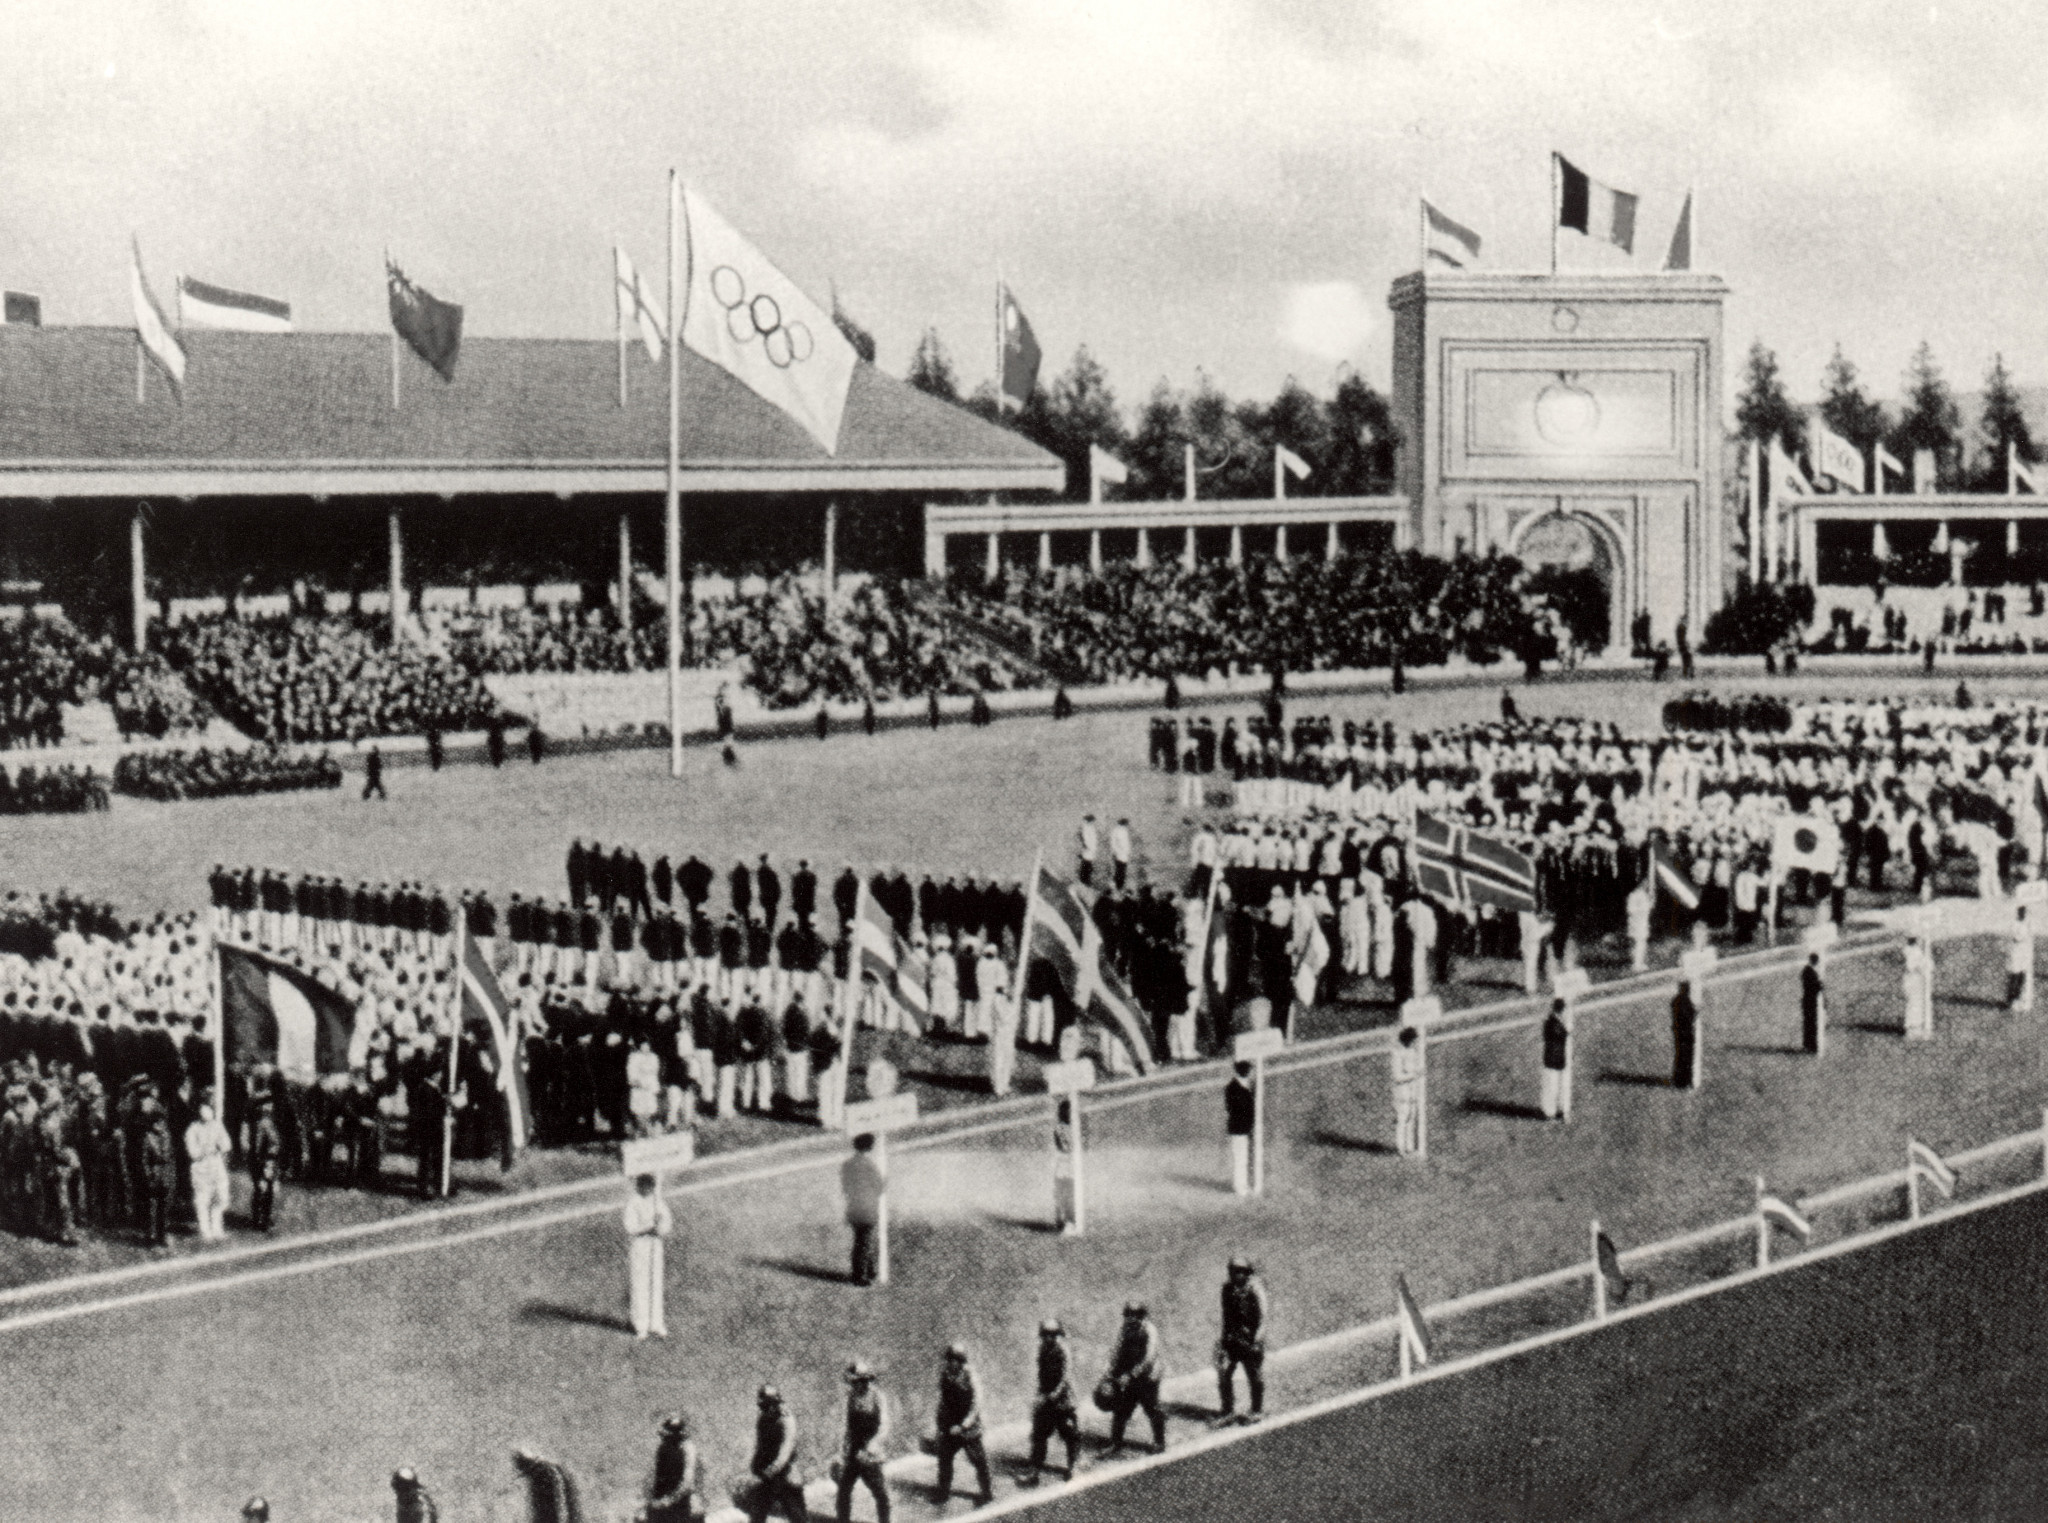 Antwerp 1920 saw ice hockey's Olympic debut ©Getty Images